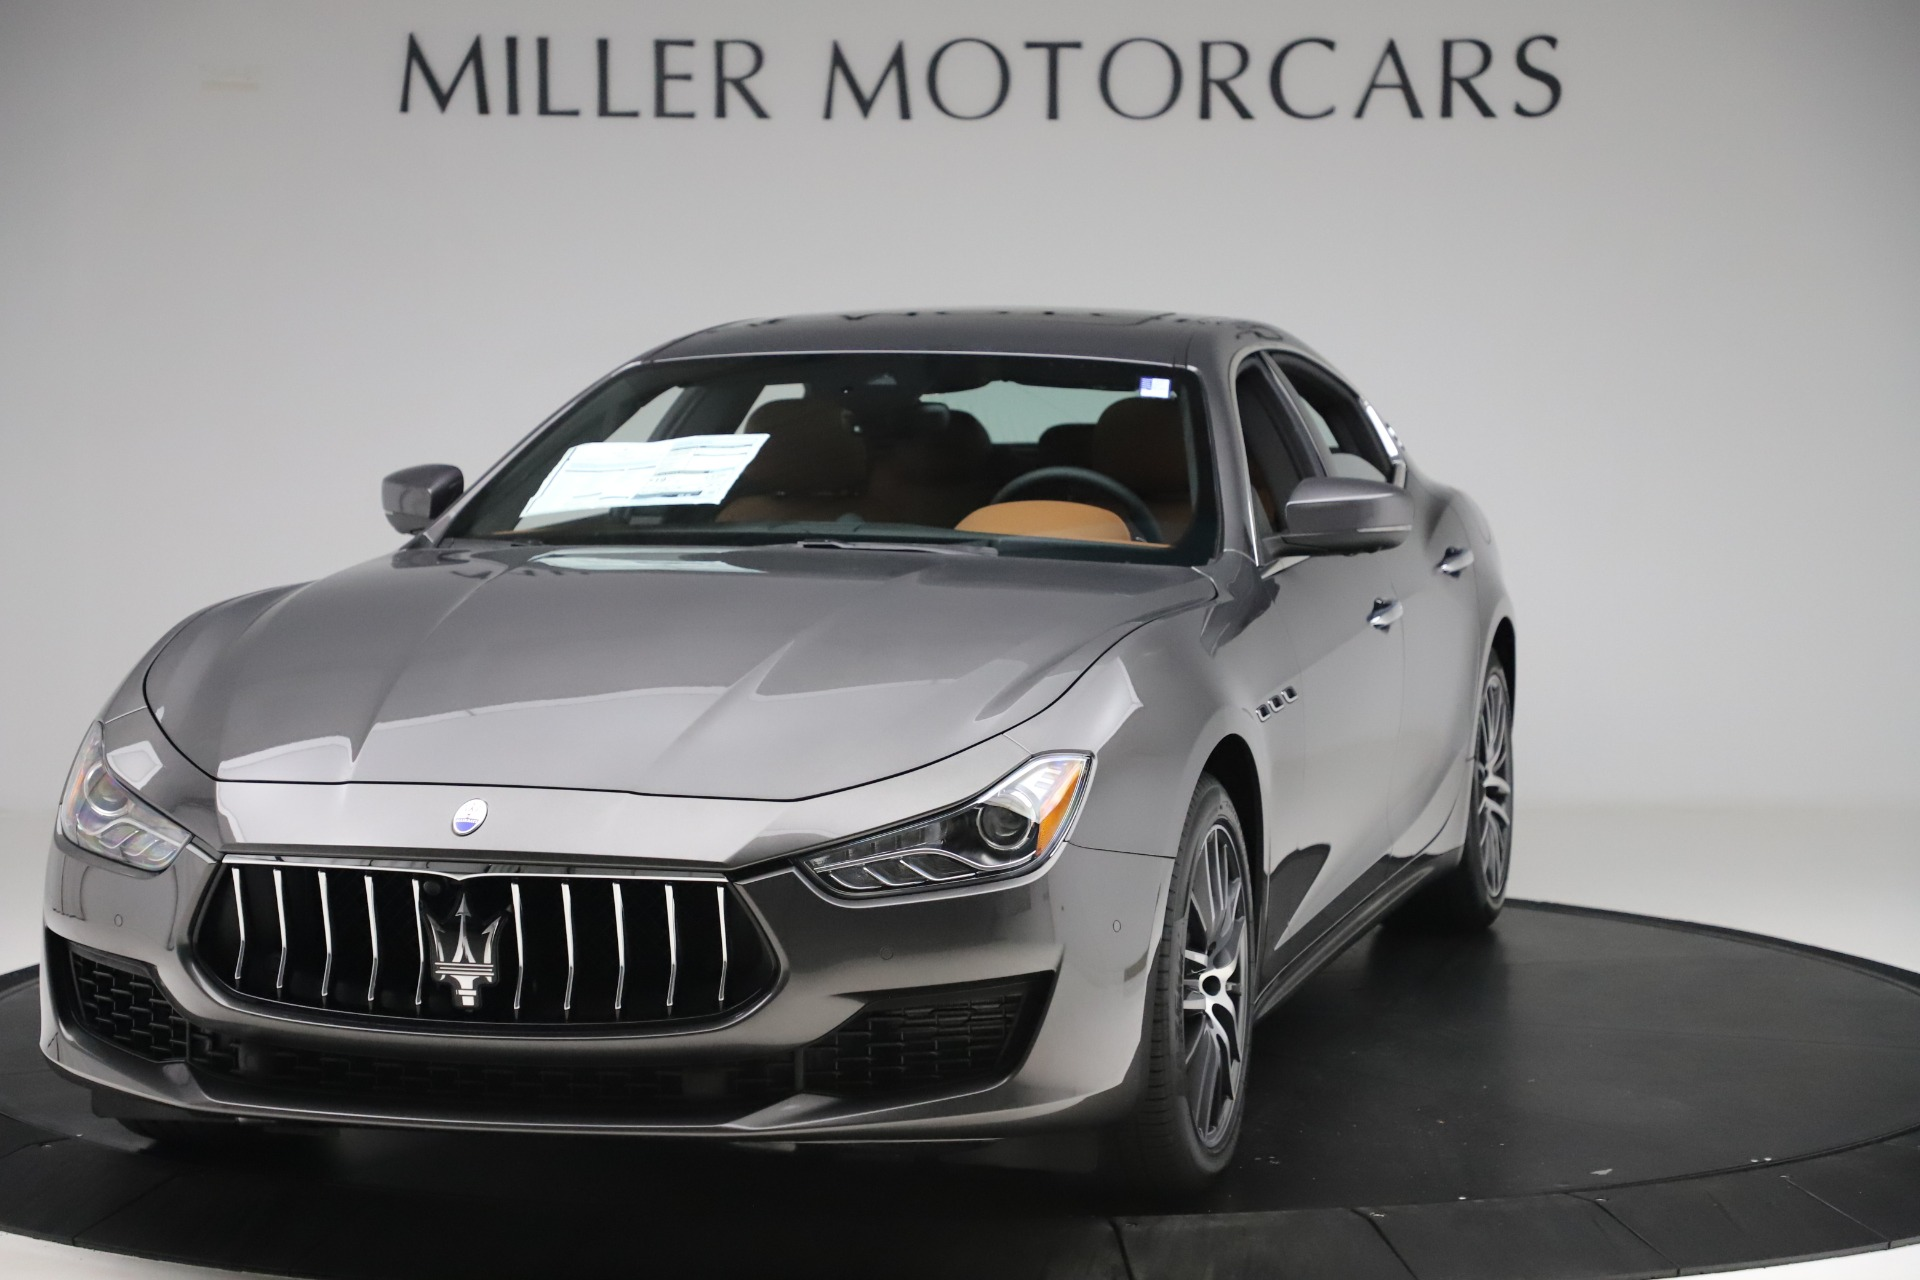 Used 2019 Maserati Ghibli S Q4 for sale Sold at Pagani of Greenwich in Greenwich CT 06830 1